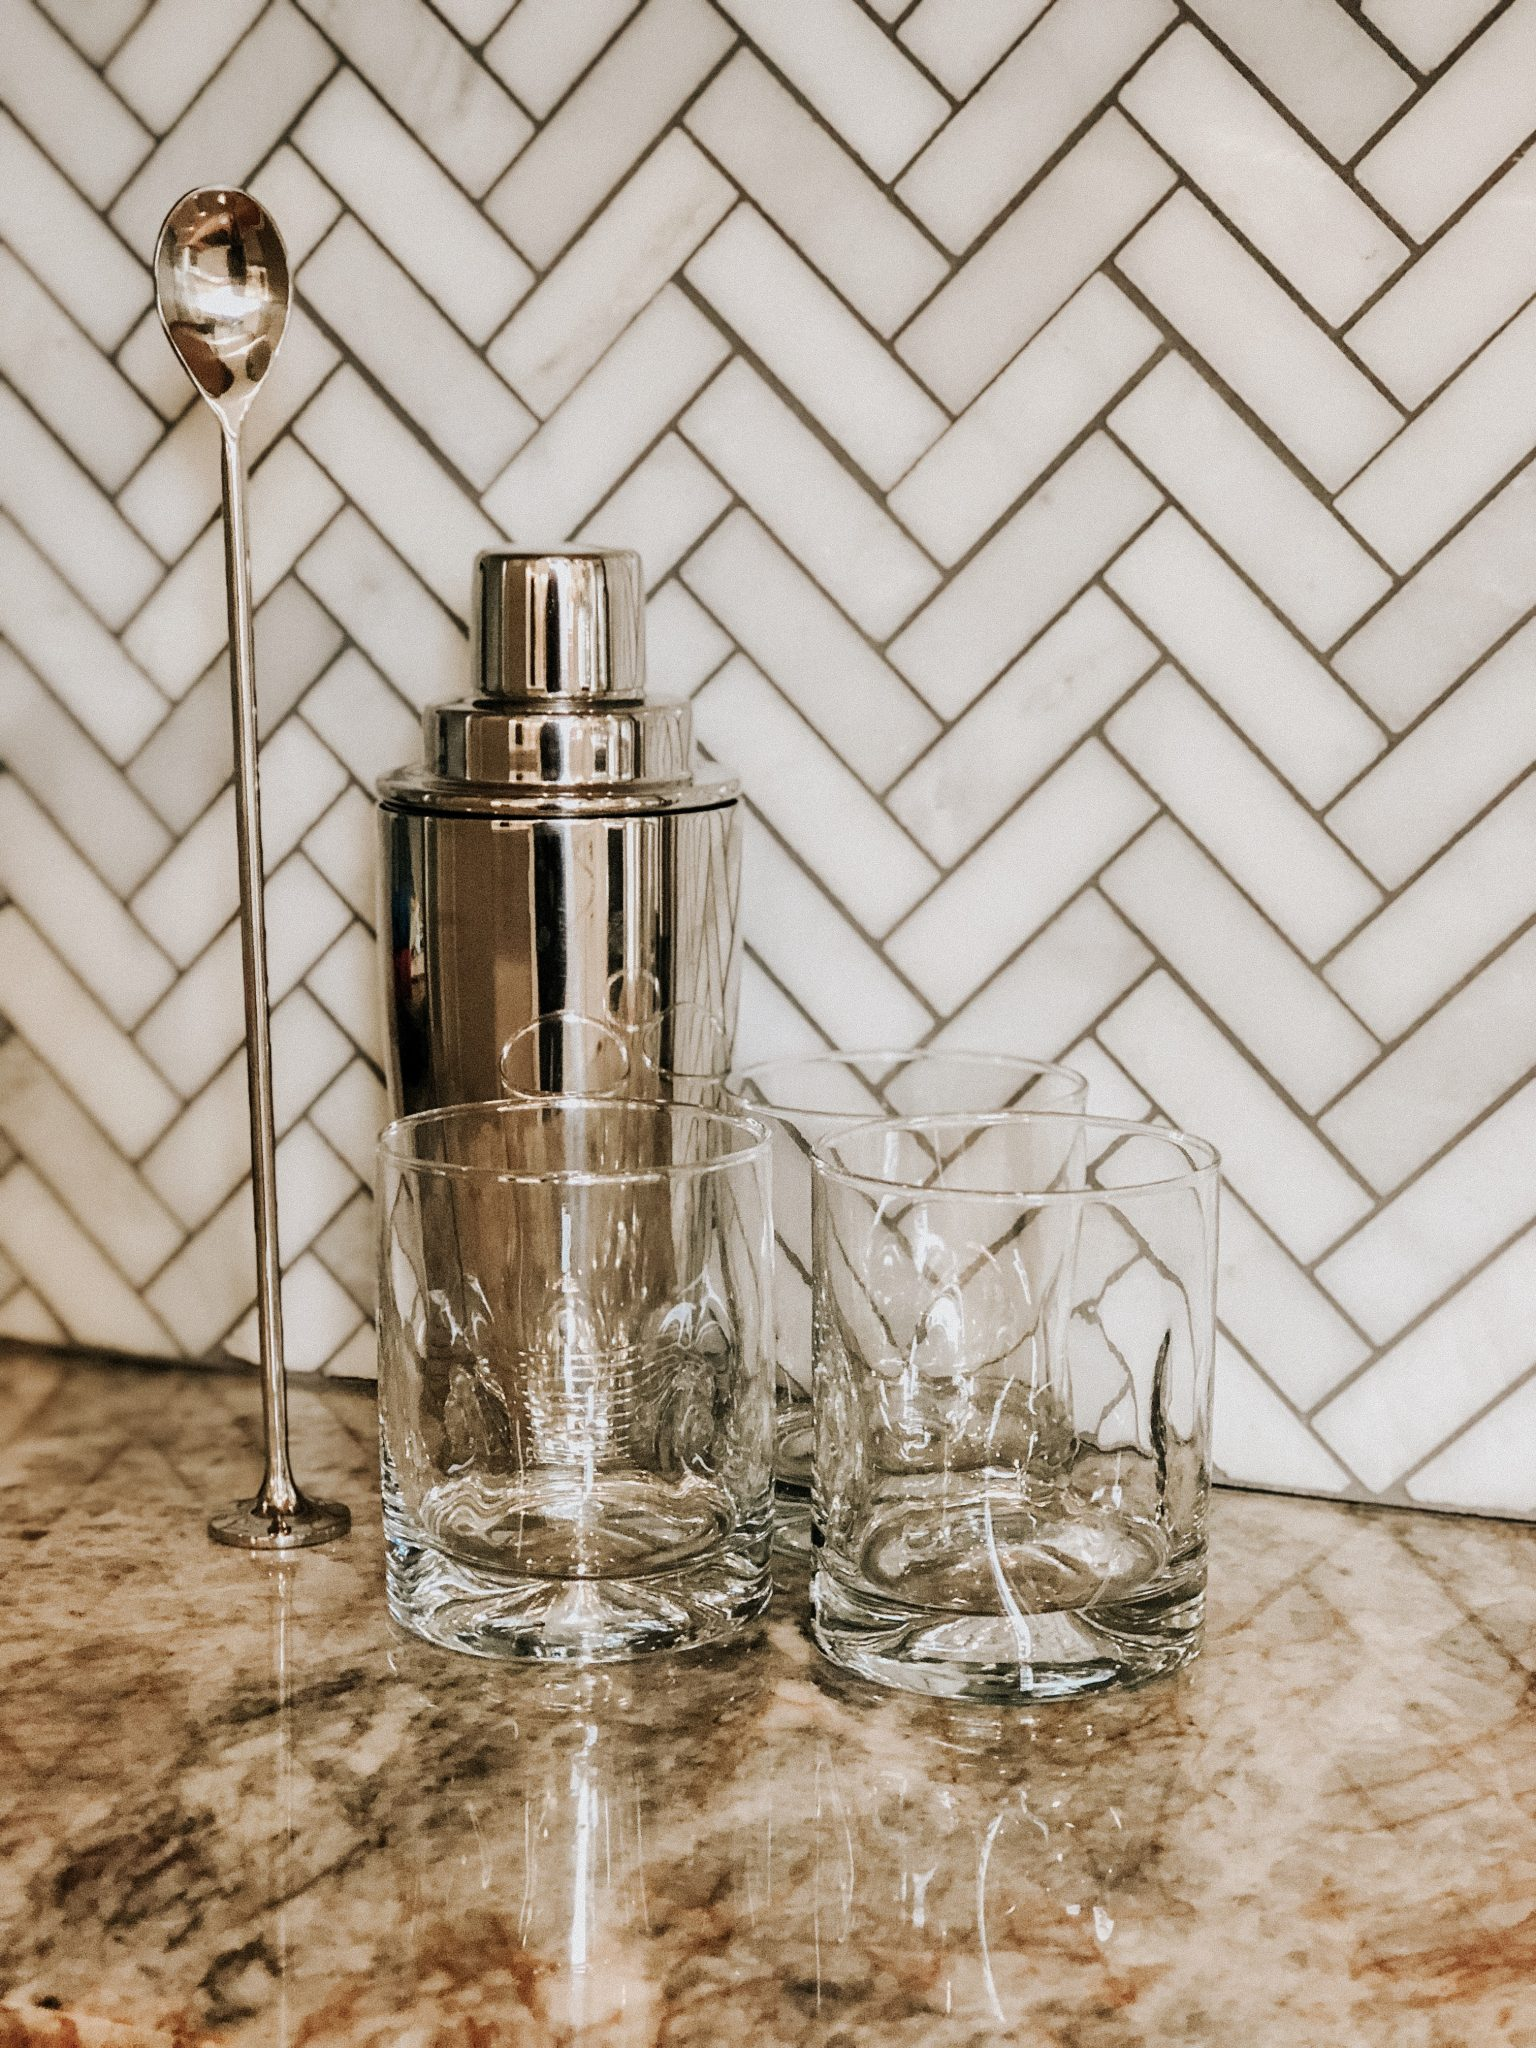 Simple Home Bar Setup | Daily Splendor Life and Style Blog | rocks glass, shaker, muddler, home bar, hostess, hosting #homebar #cocktails #entertaining #mixeddrinks